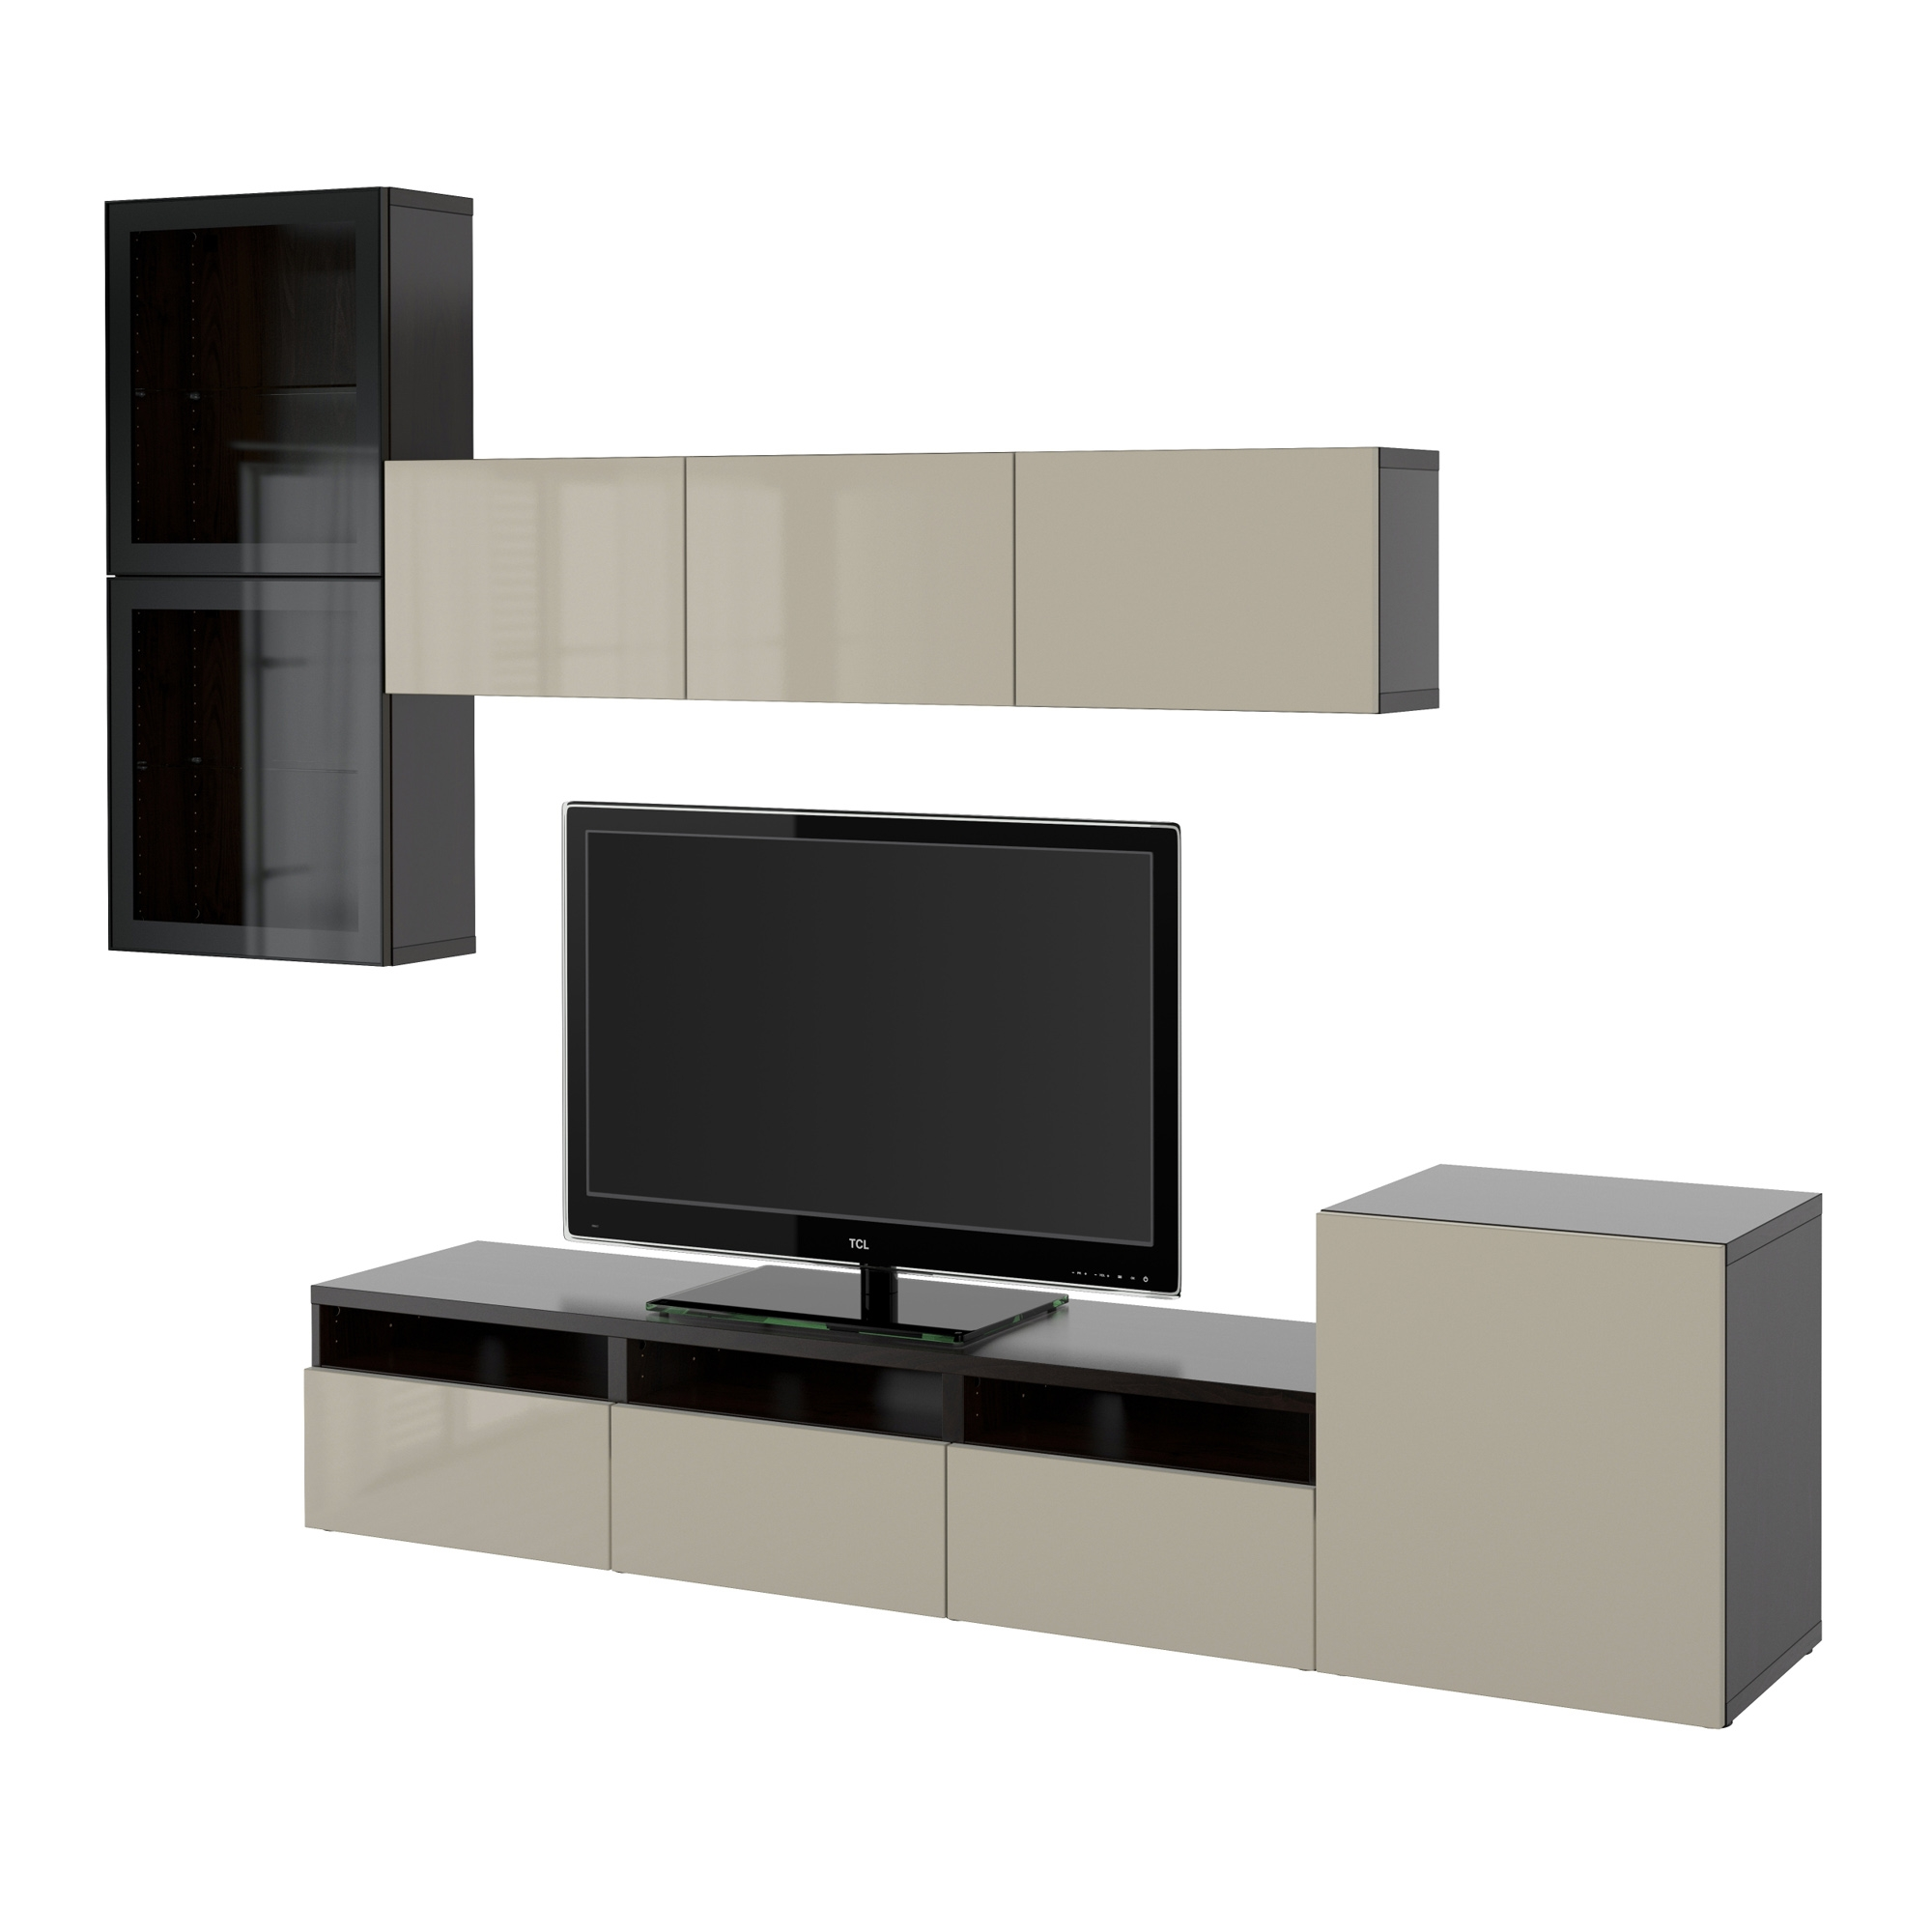 best tv storage combination glass doors. Black Bedroom Furniture Sets. Home Design Ideas